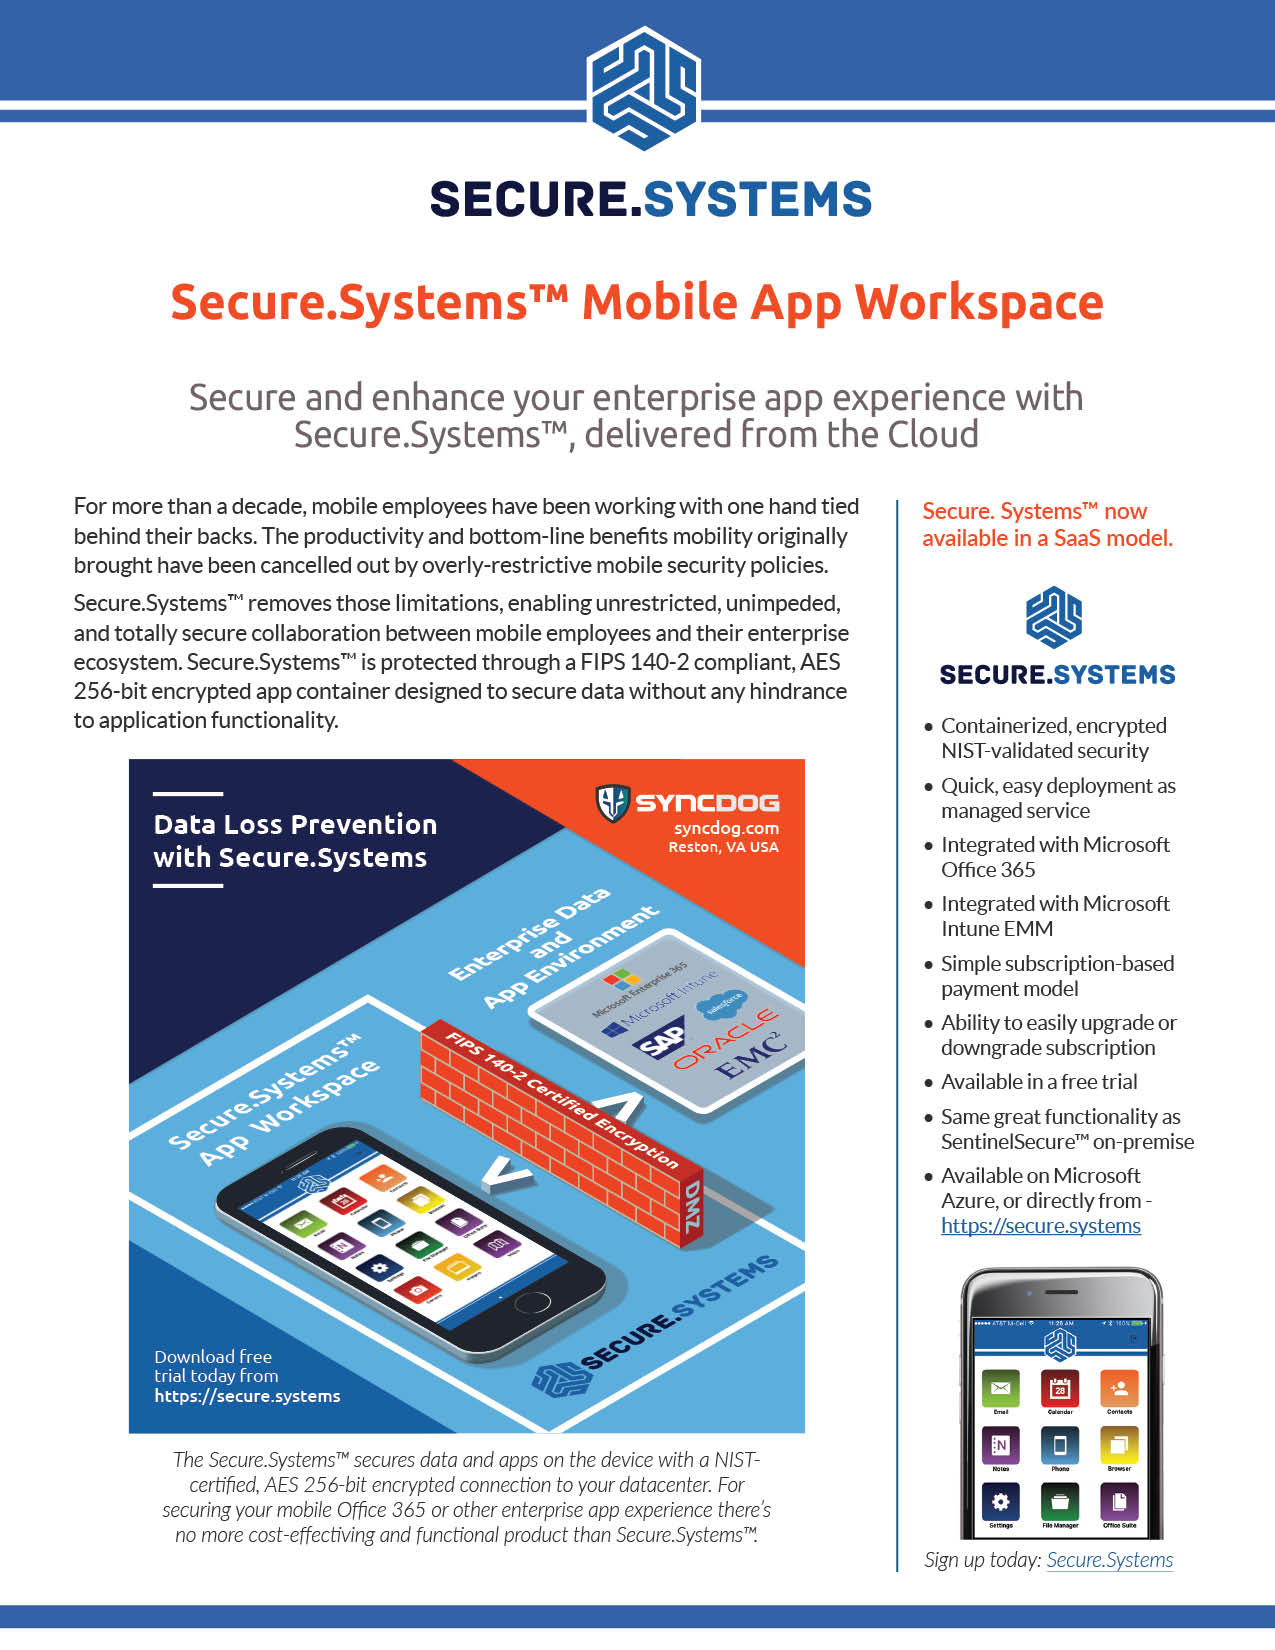 Secure.System Mobile App Work space